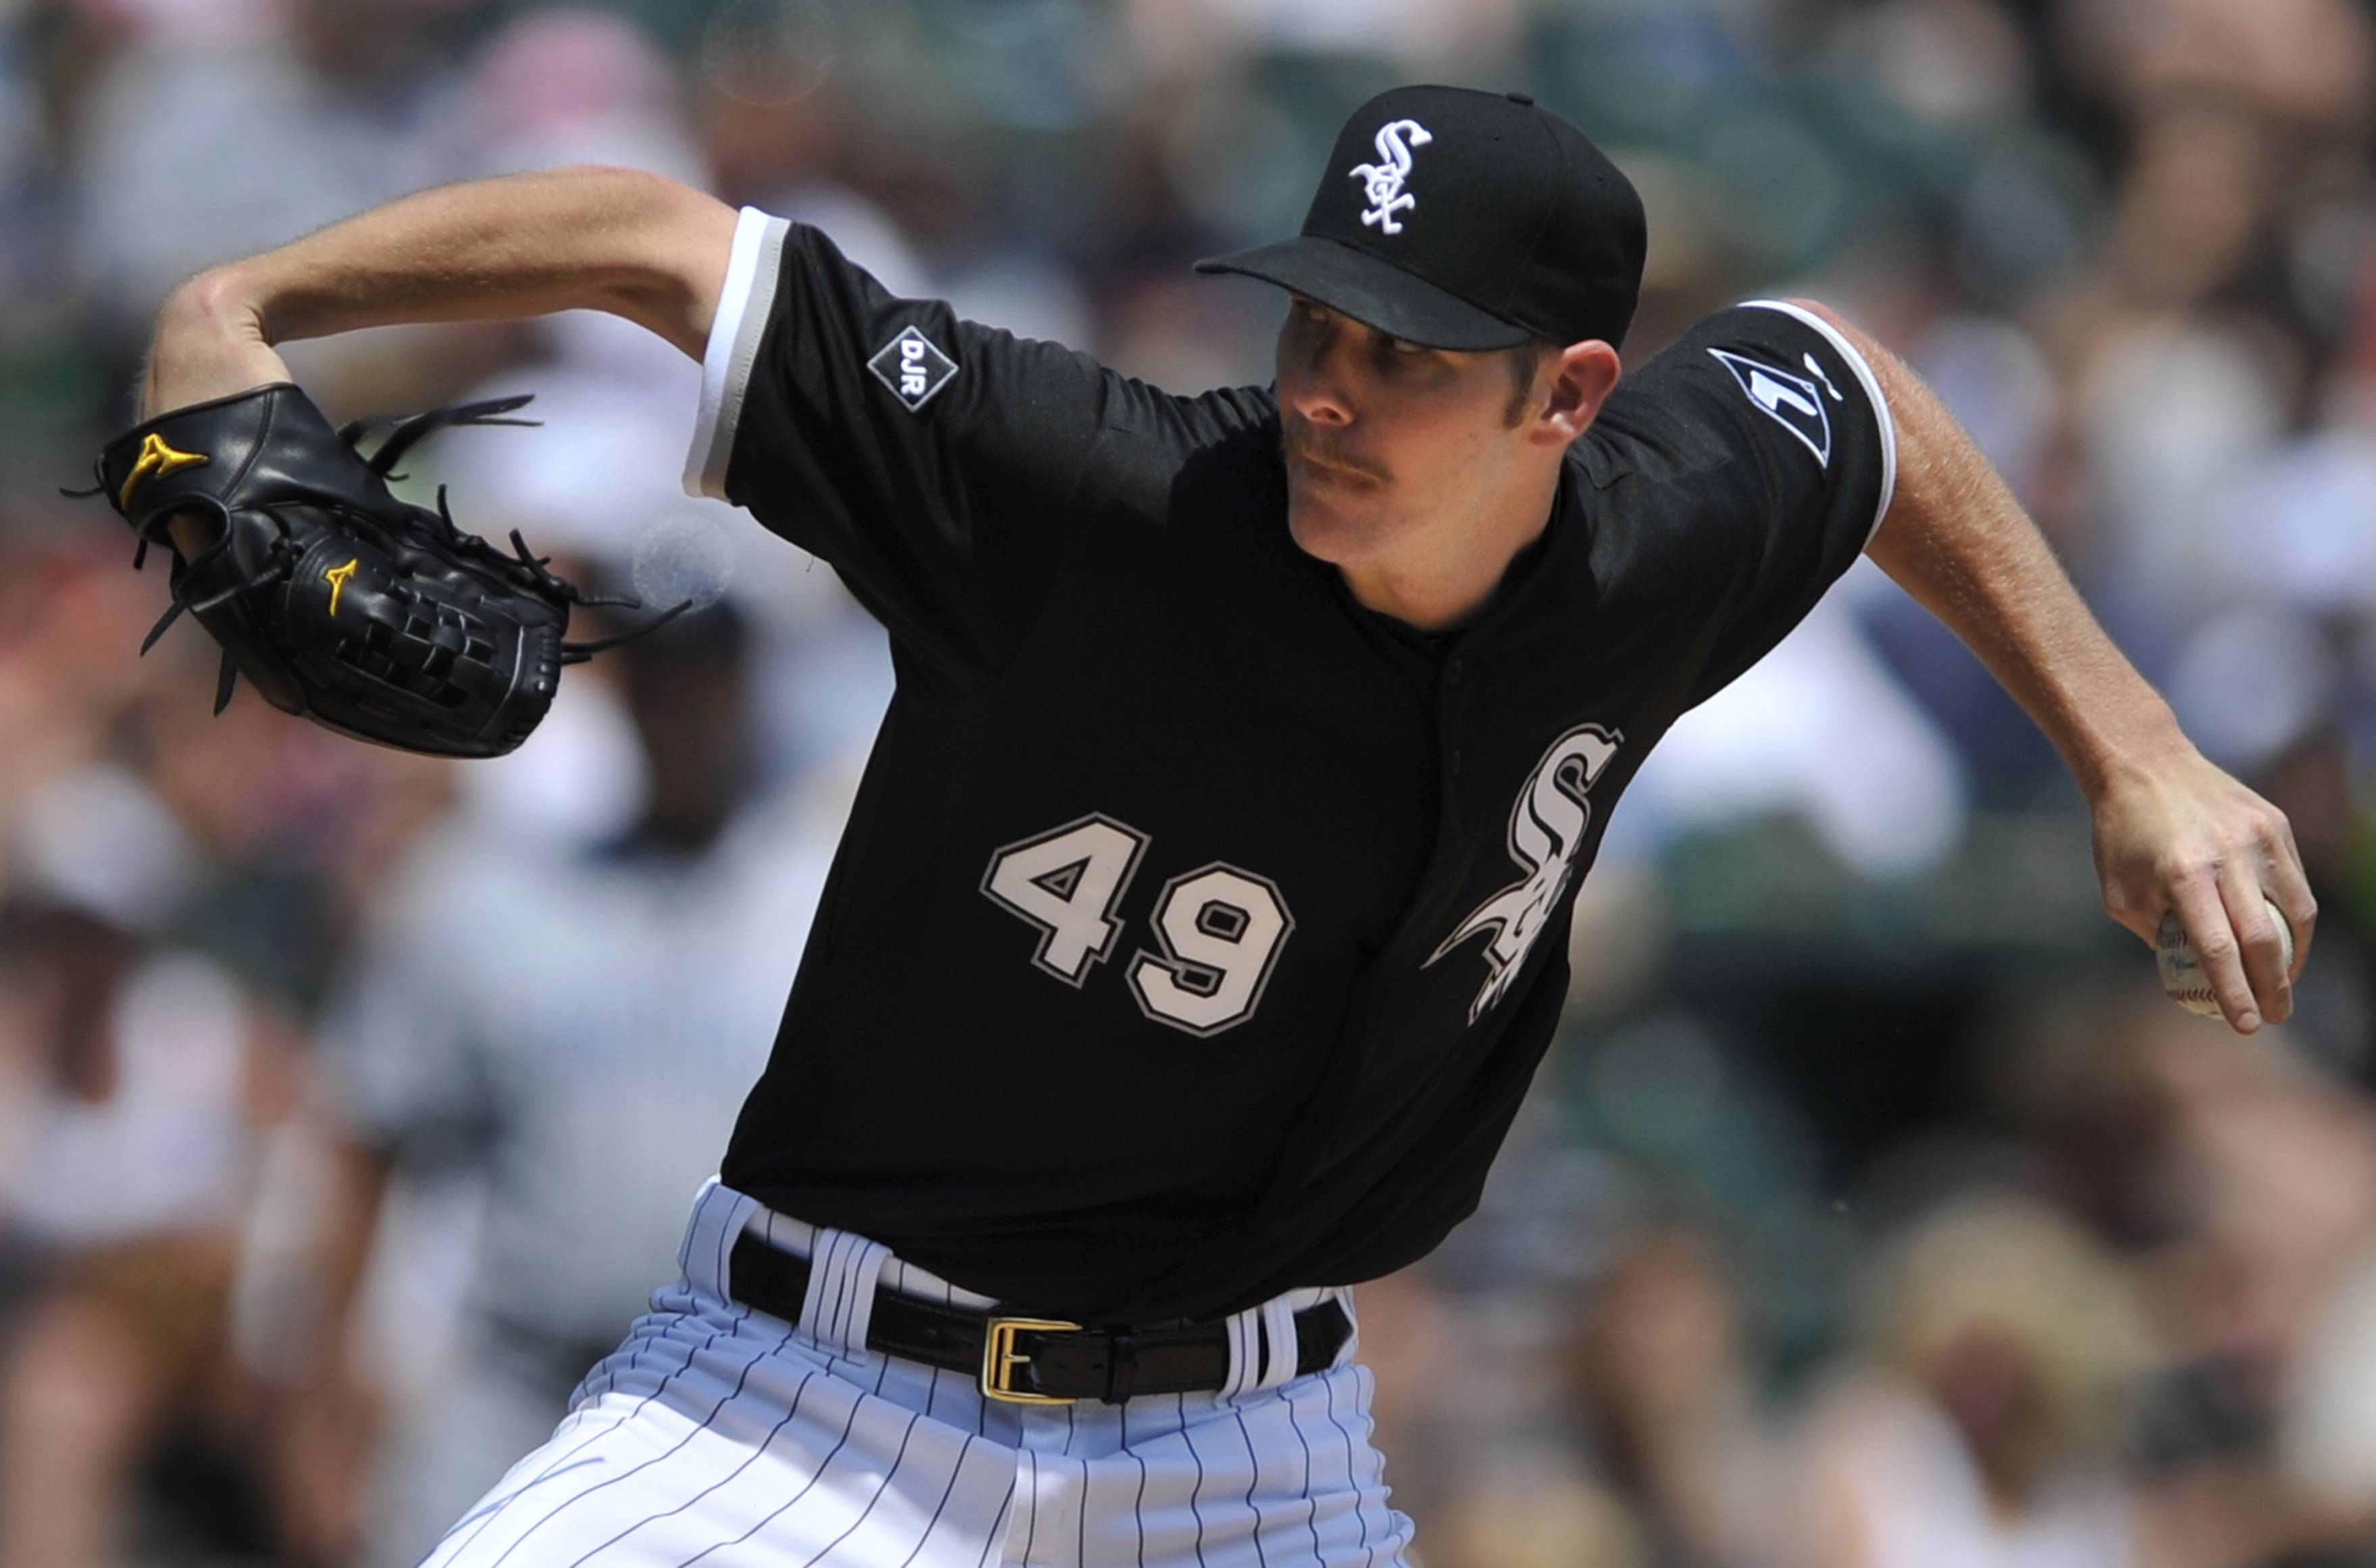 Chicago White Sox starter Chris Sale delivers a pitch during the third inning of an interleague  baseball game against the San Diego Padres in Chicago, Sunday, June 1, 2014.